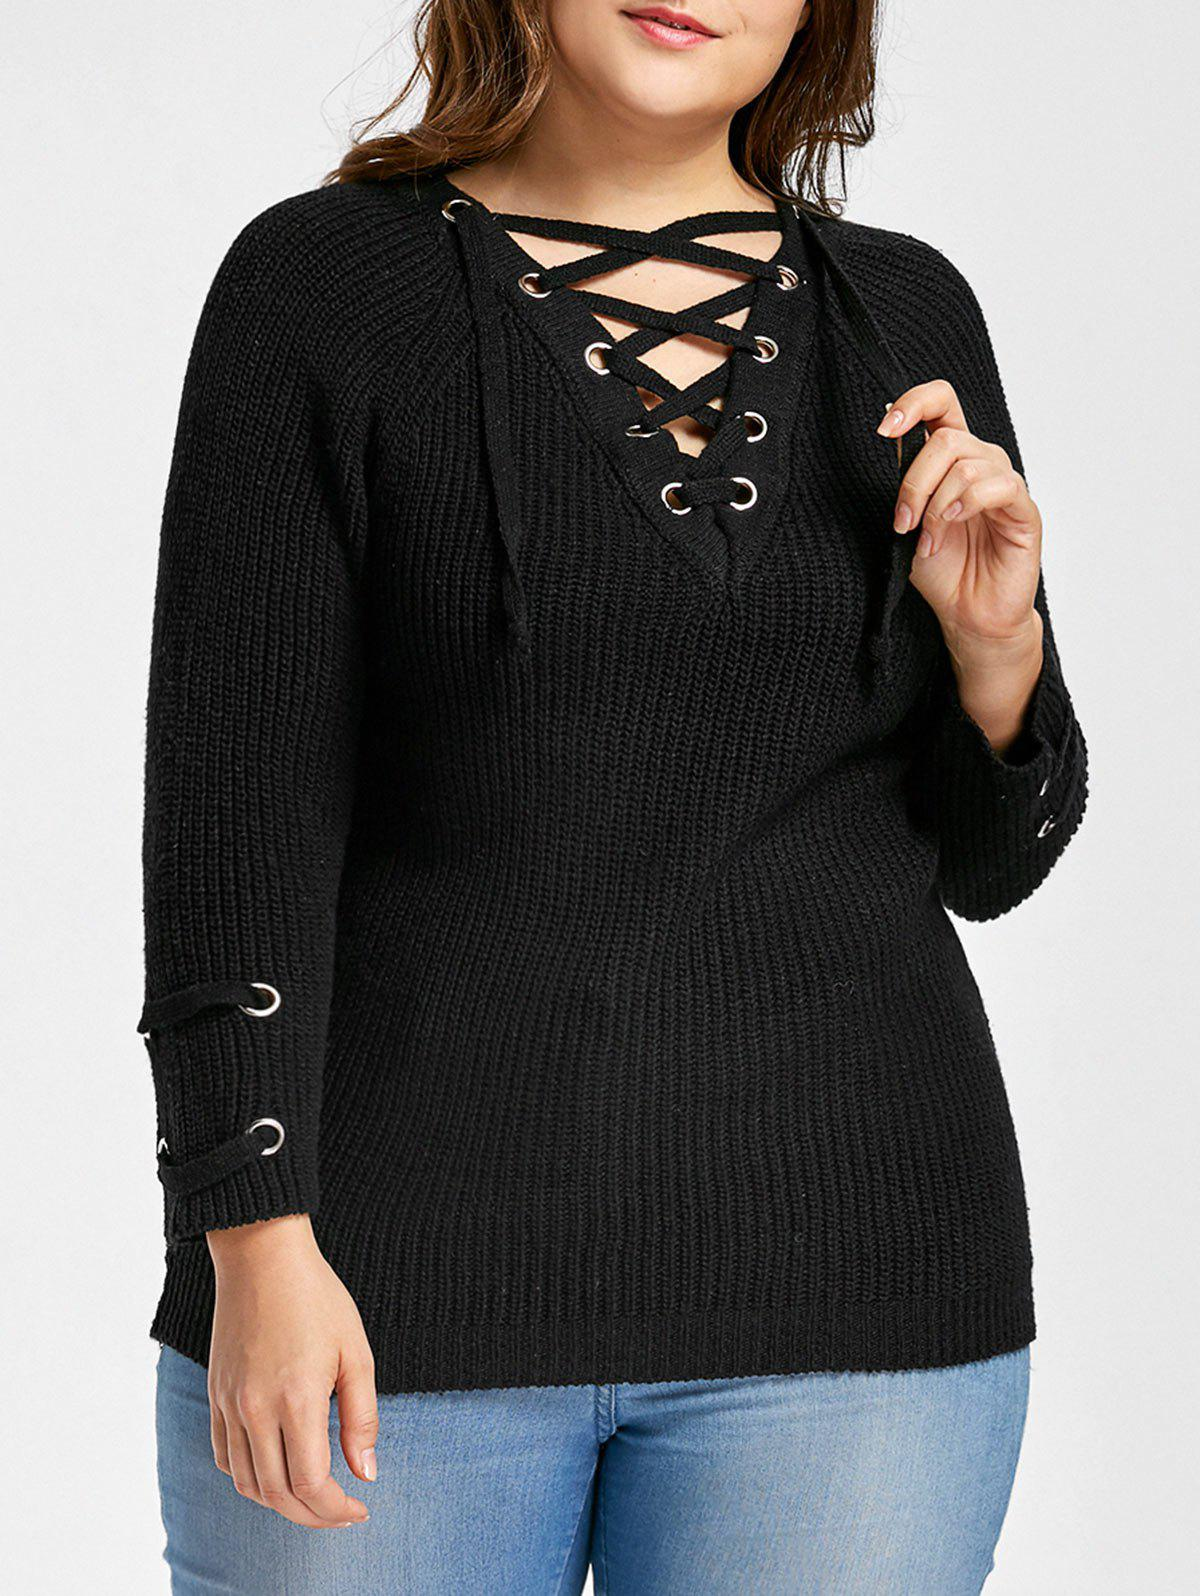 Plus Size Raglan Sleeve Lace Up SweaterWOMEN<br><br>Size: ONE SIZE; Color: BLACK; Type: Pullovers; Material: Acrylic,Polyester; Sleeve Length: Full; Collar: V-Neck; Style: Fashion; Season: Fall; Pattern Type: Solid; Weight: 0.5300kg; Package Contents: 1 x Sweater;